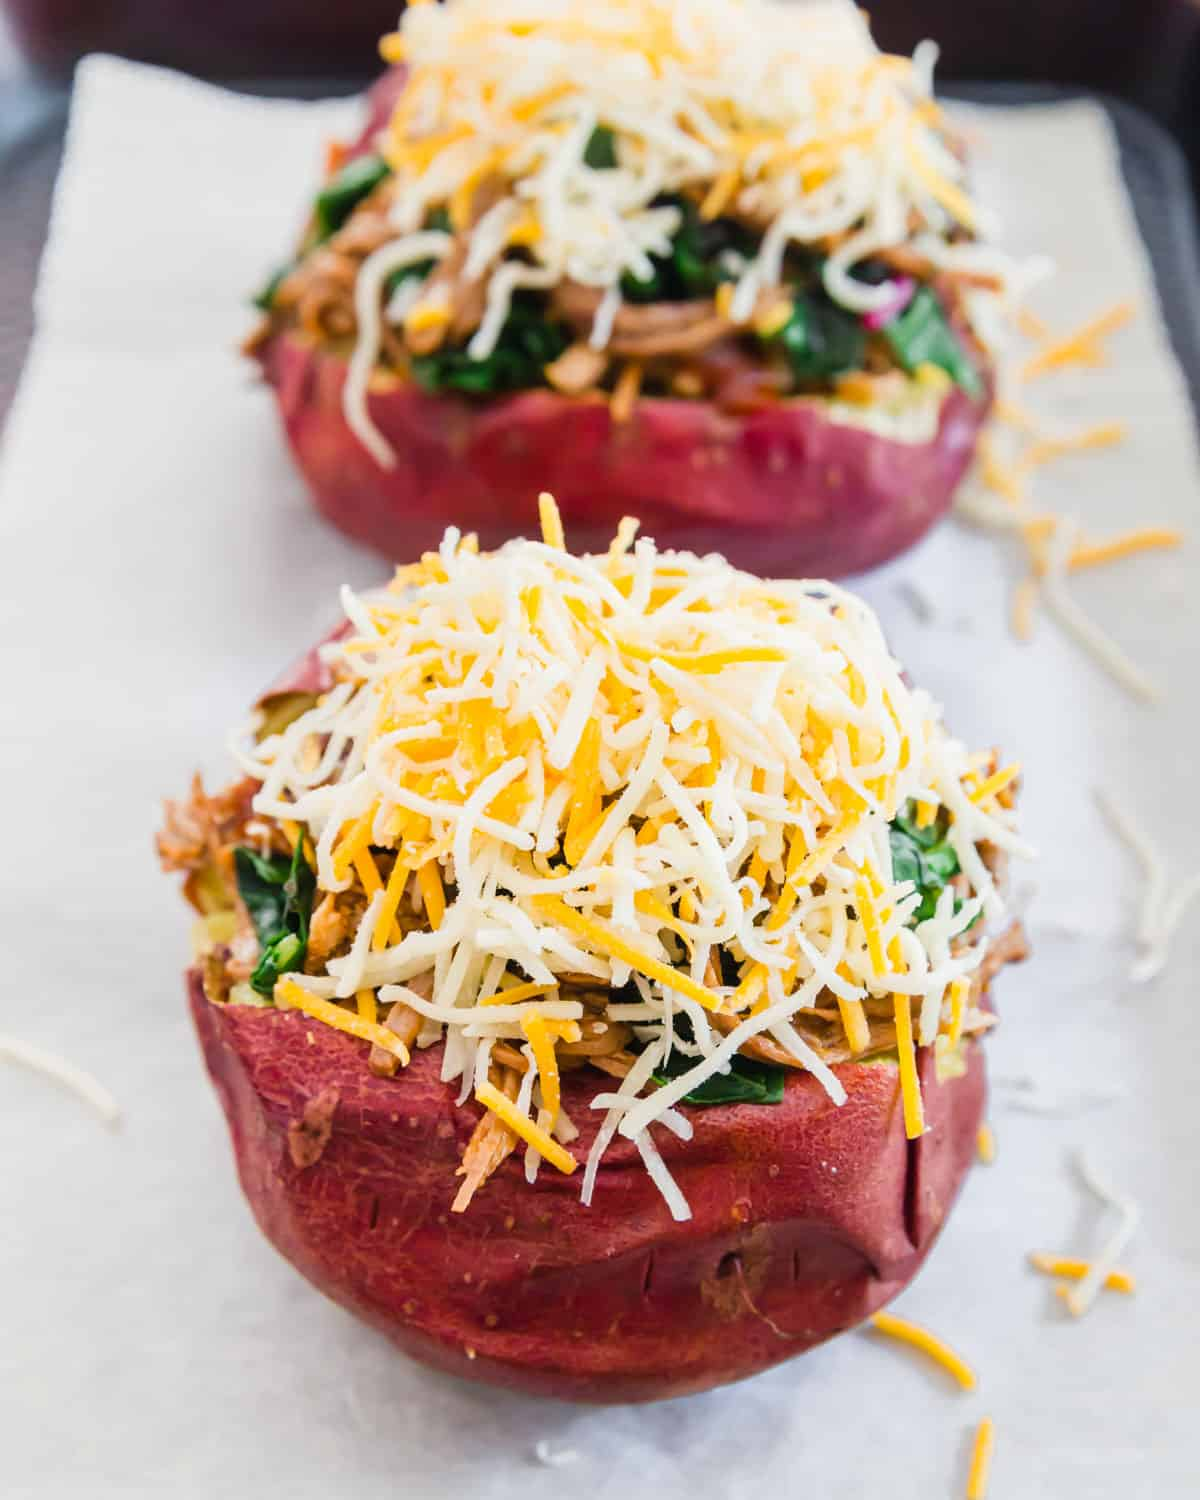 brisket stuffed potatoes before baking topped with lots of shredded cheddar cheese